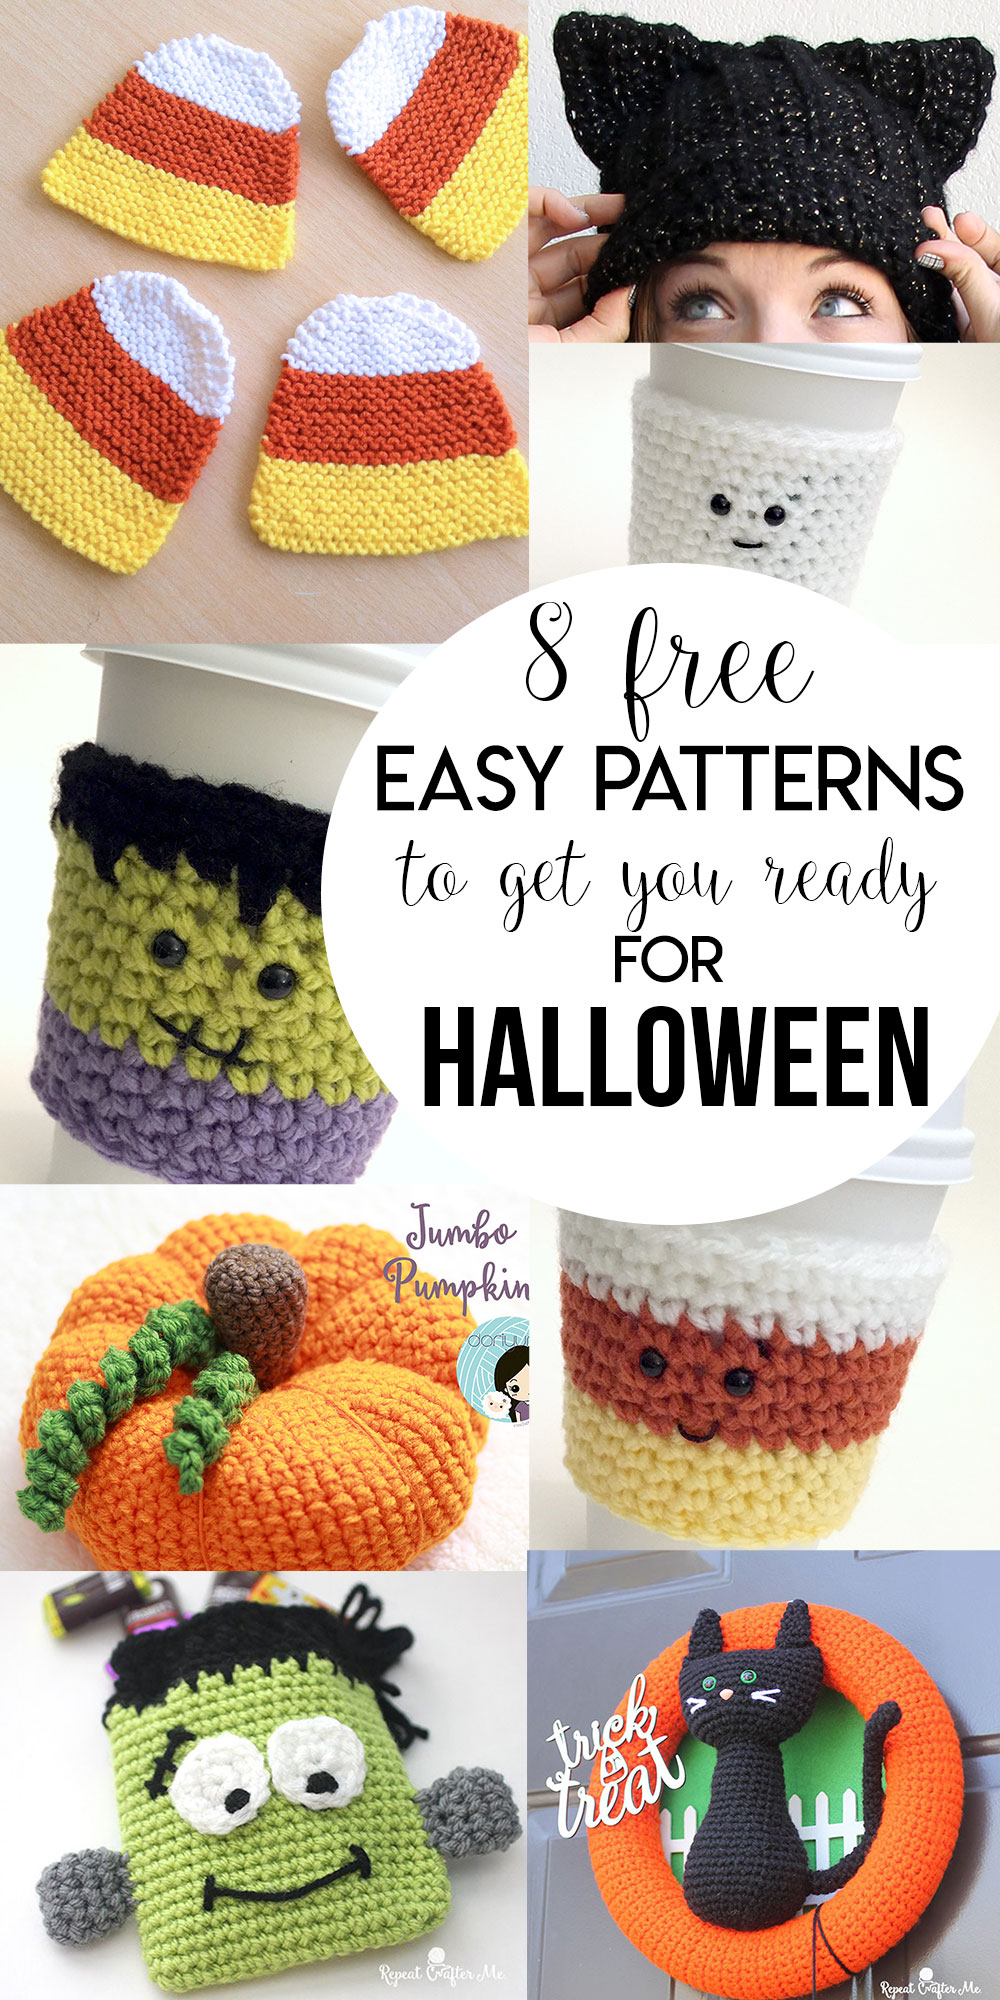 8 Free Easy Patterns To Get You Ready For Halloween!